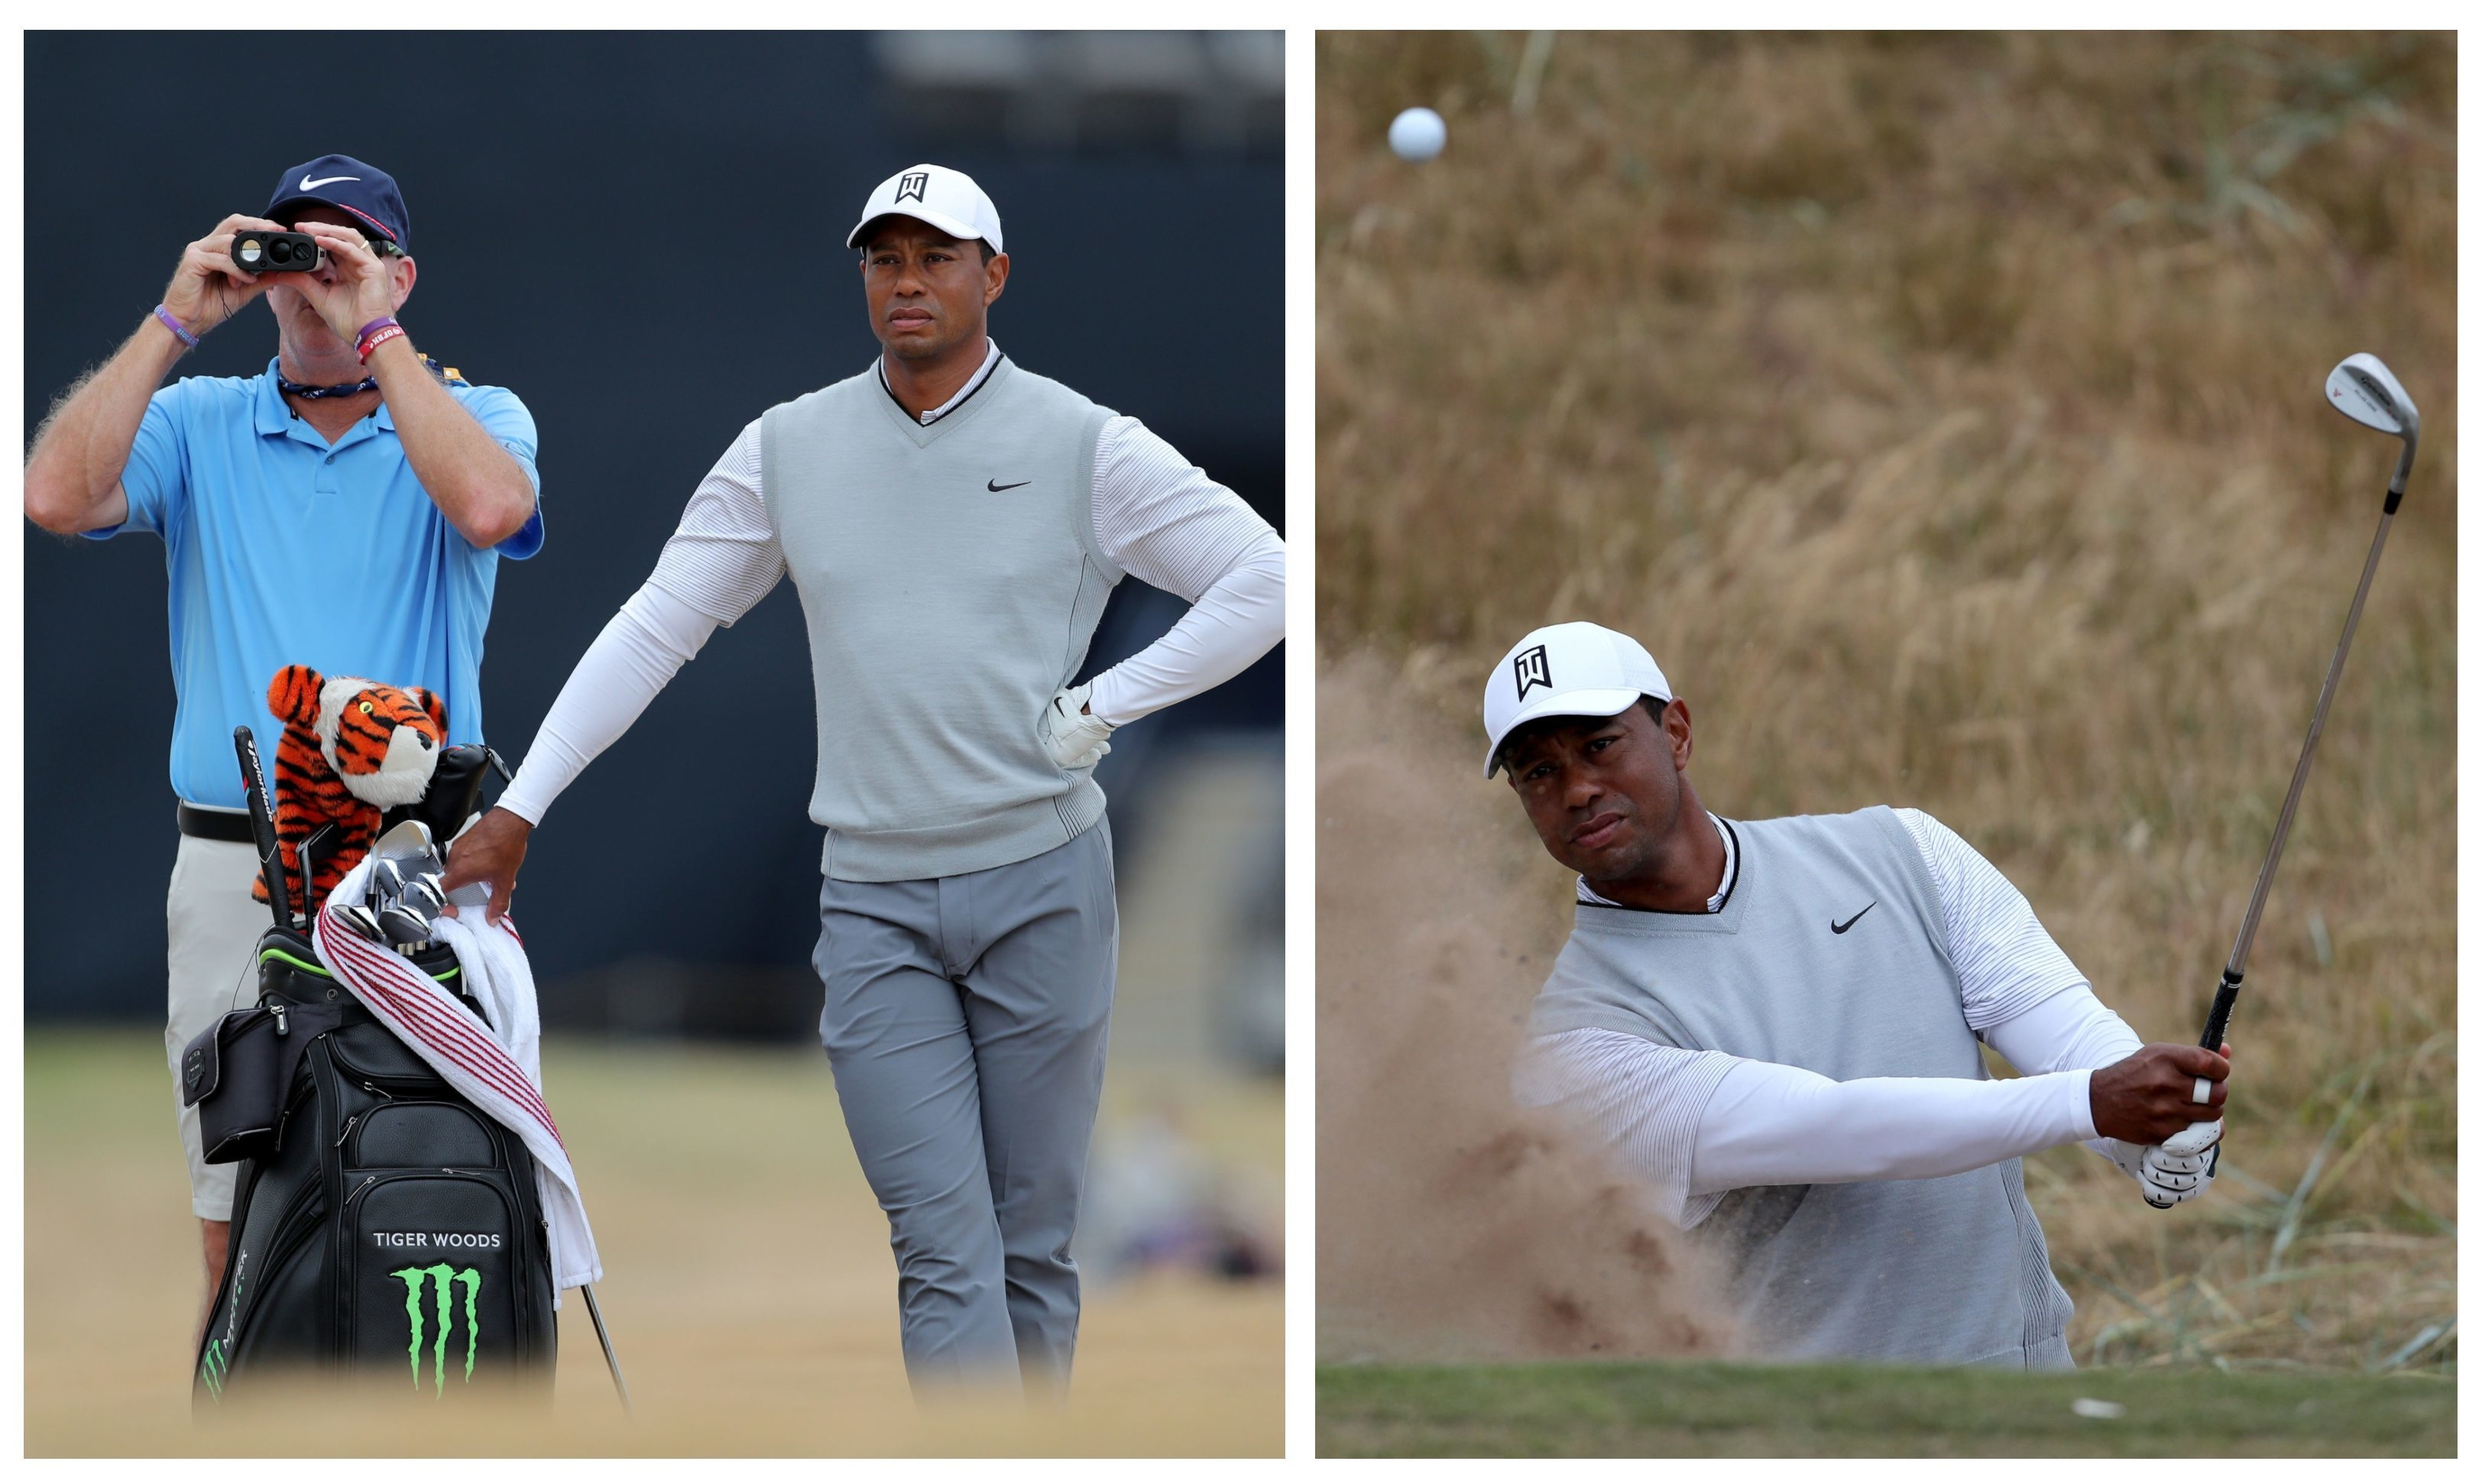 Tiger Woods in Carnoustie.